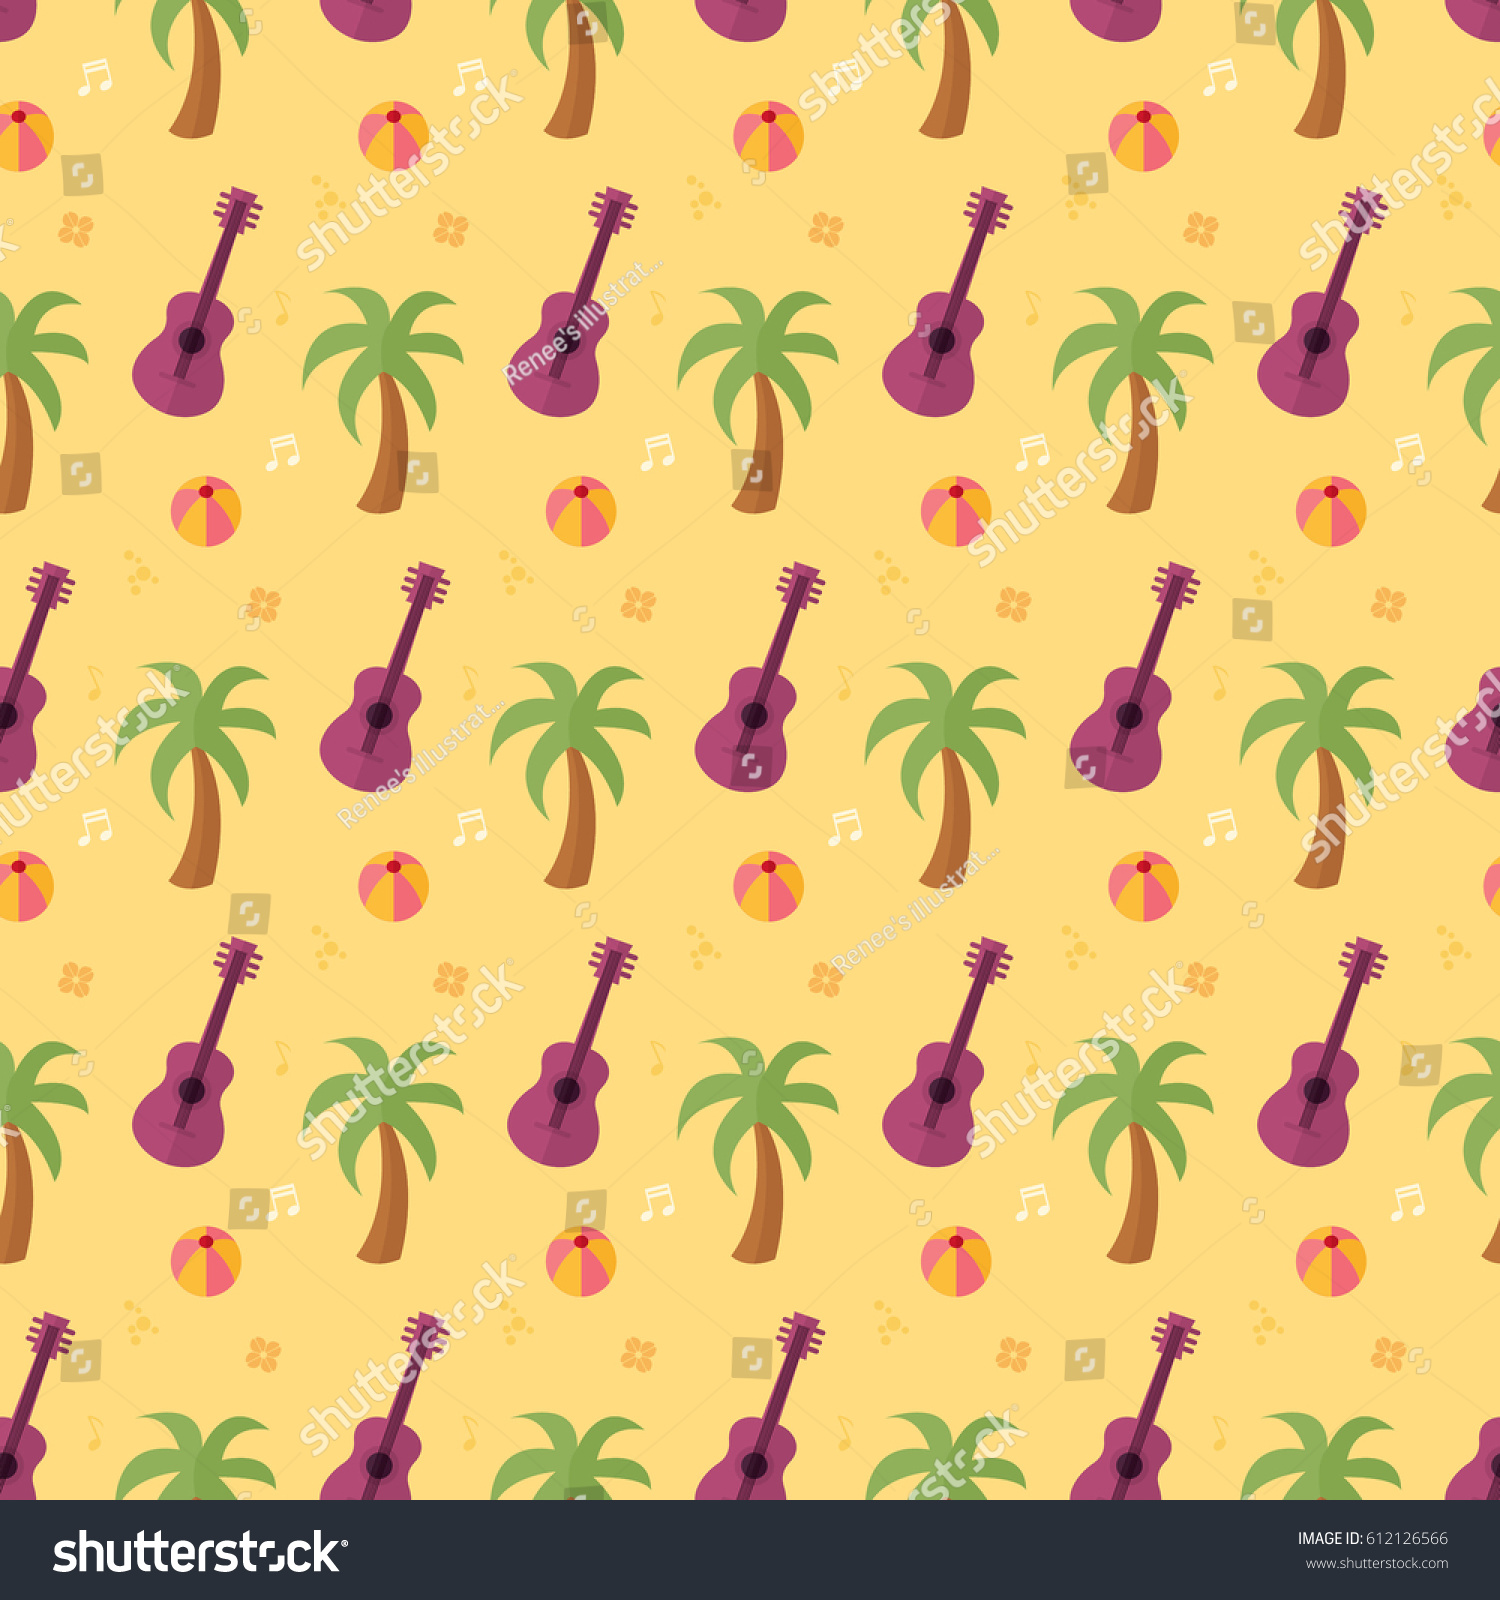 Great Wallpaper Music Tree - stock-vector-seamless-pattern-palm-tree-beach-ball-guitar-music-summer-on-yellow-background-vector-wallpaper-612126566  Image_282930.jpg